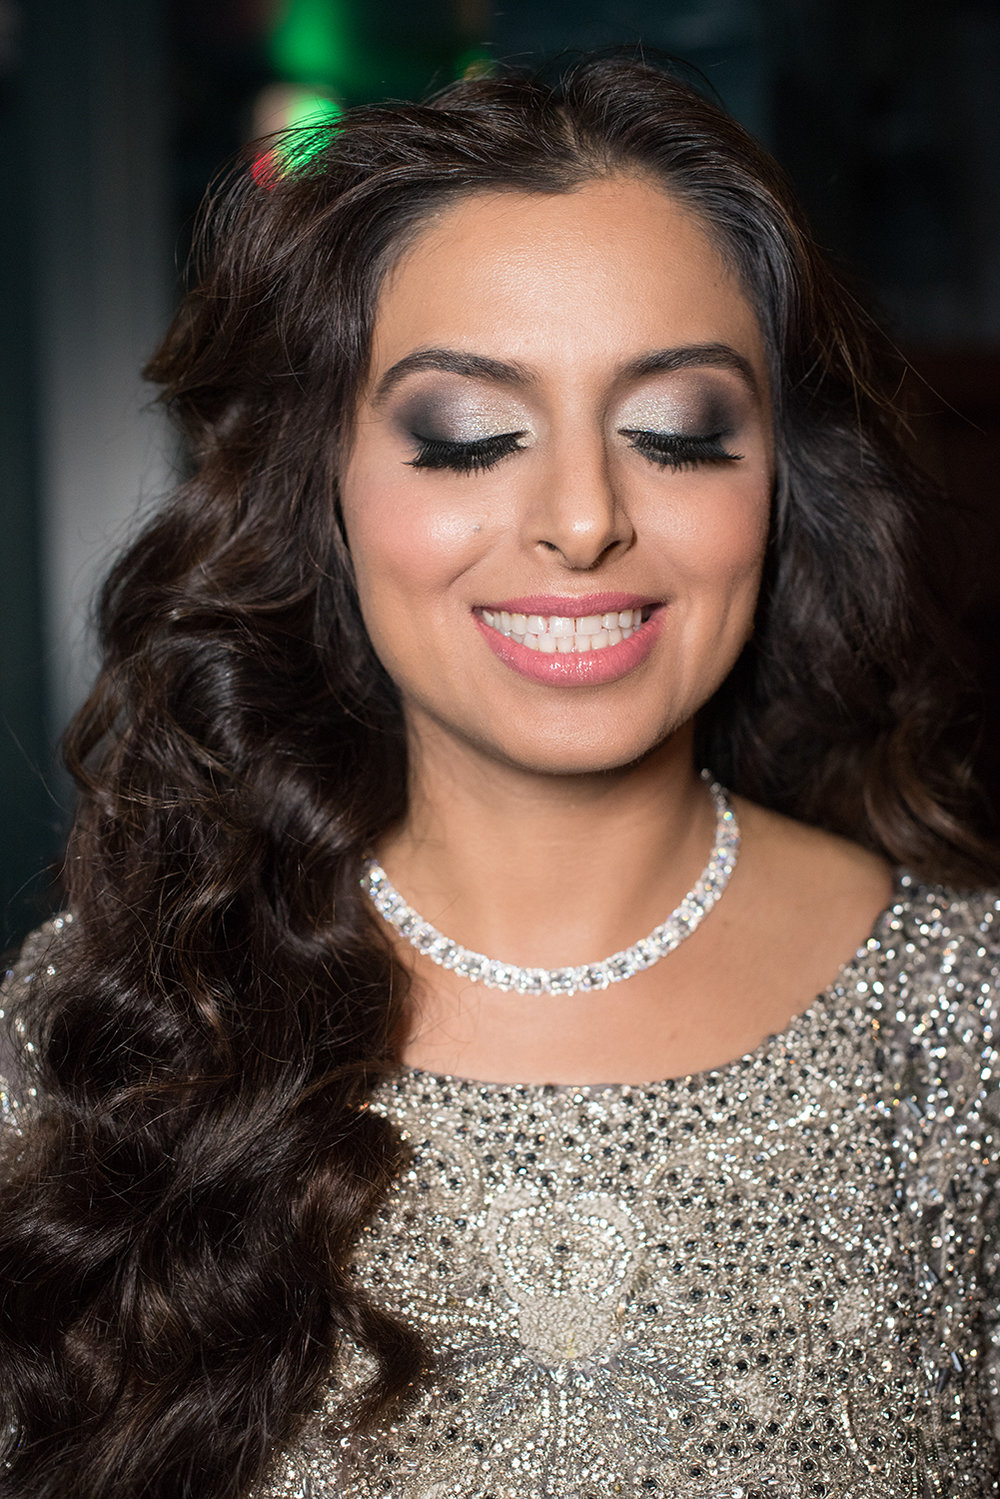 Glamorous glow indian bride silver glitter eyeshadow grey black pink lips by Beauty Affair Agne Skaringa copy.jpg